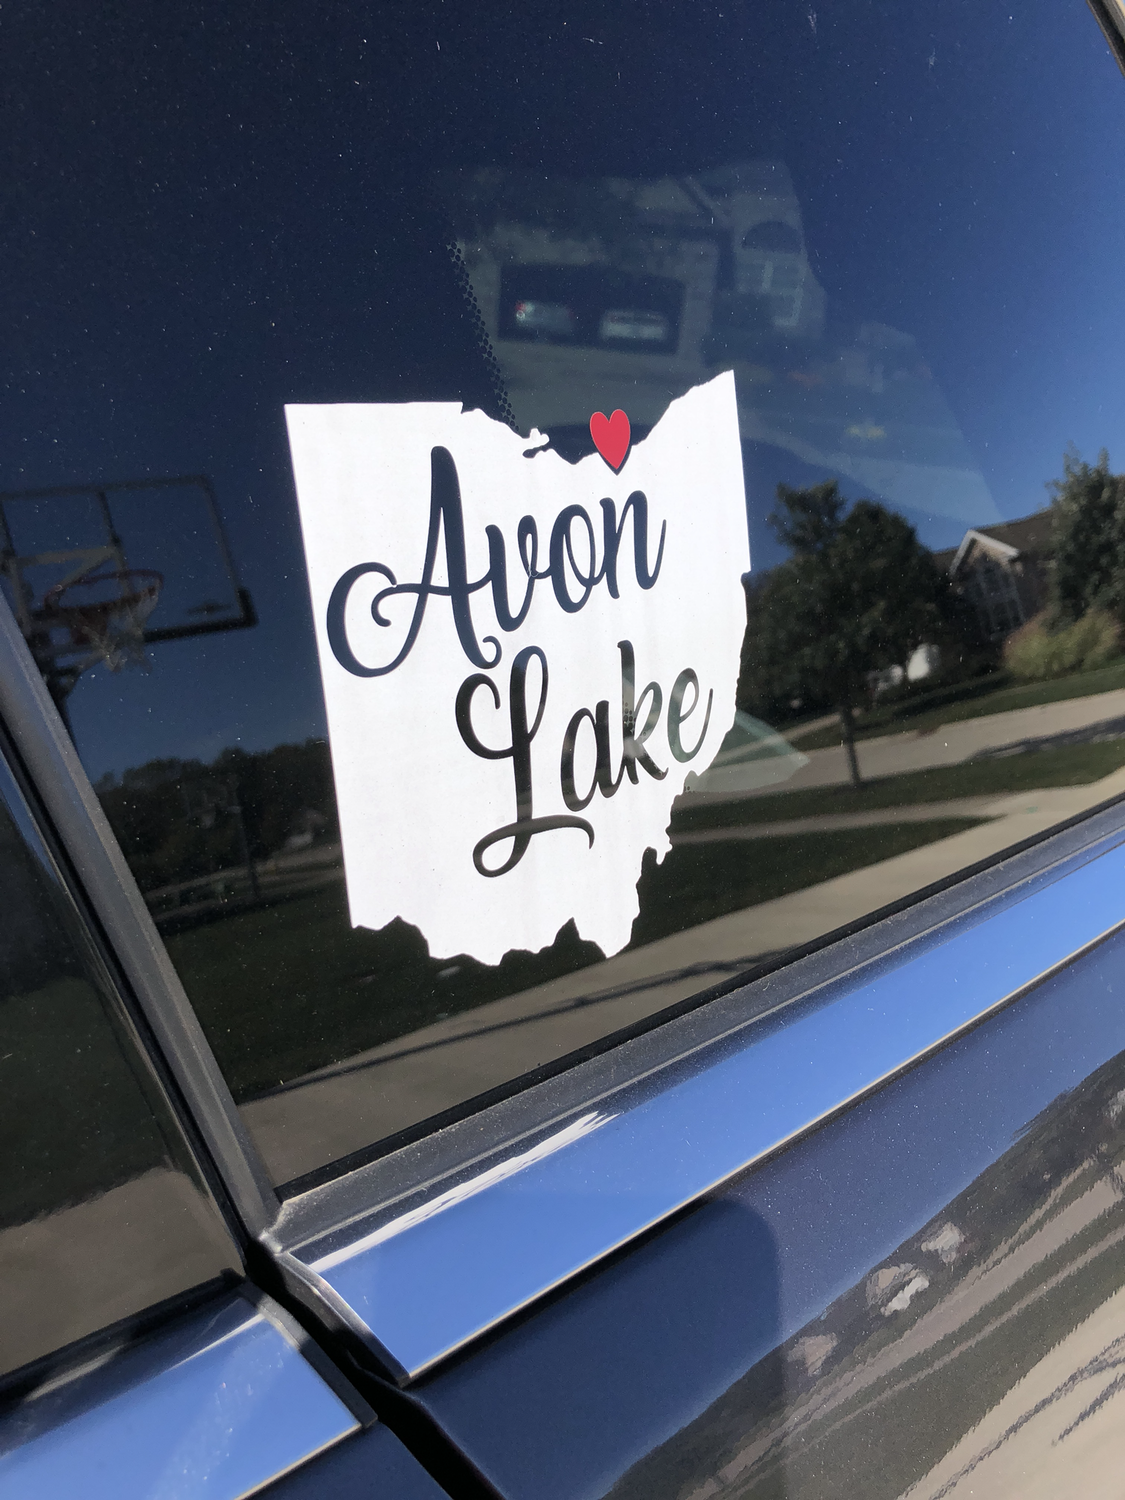 Avon Lake State with heart Car Decal